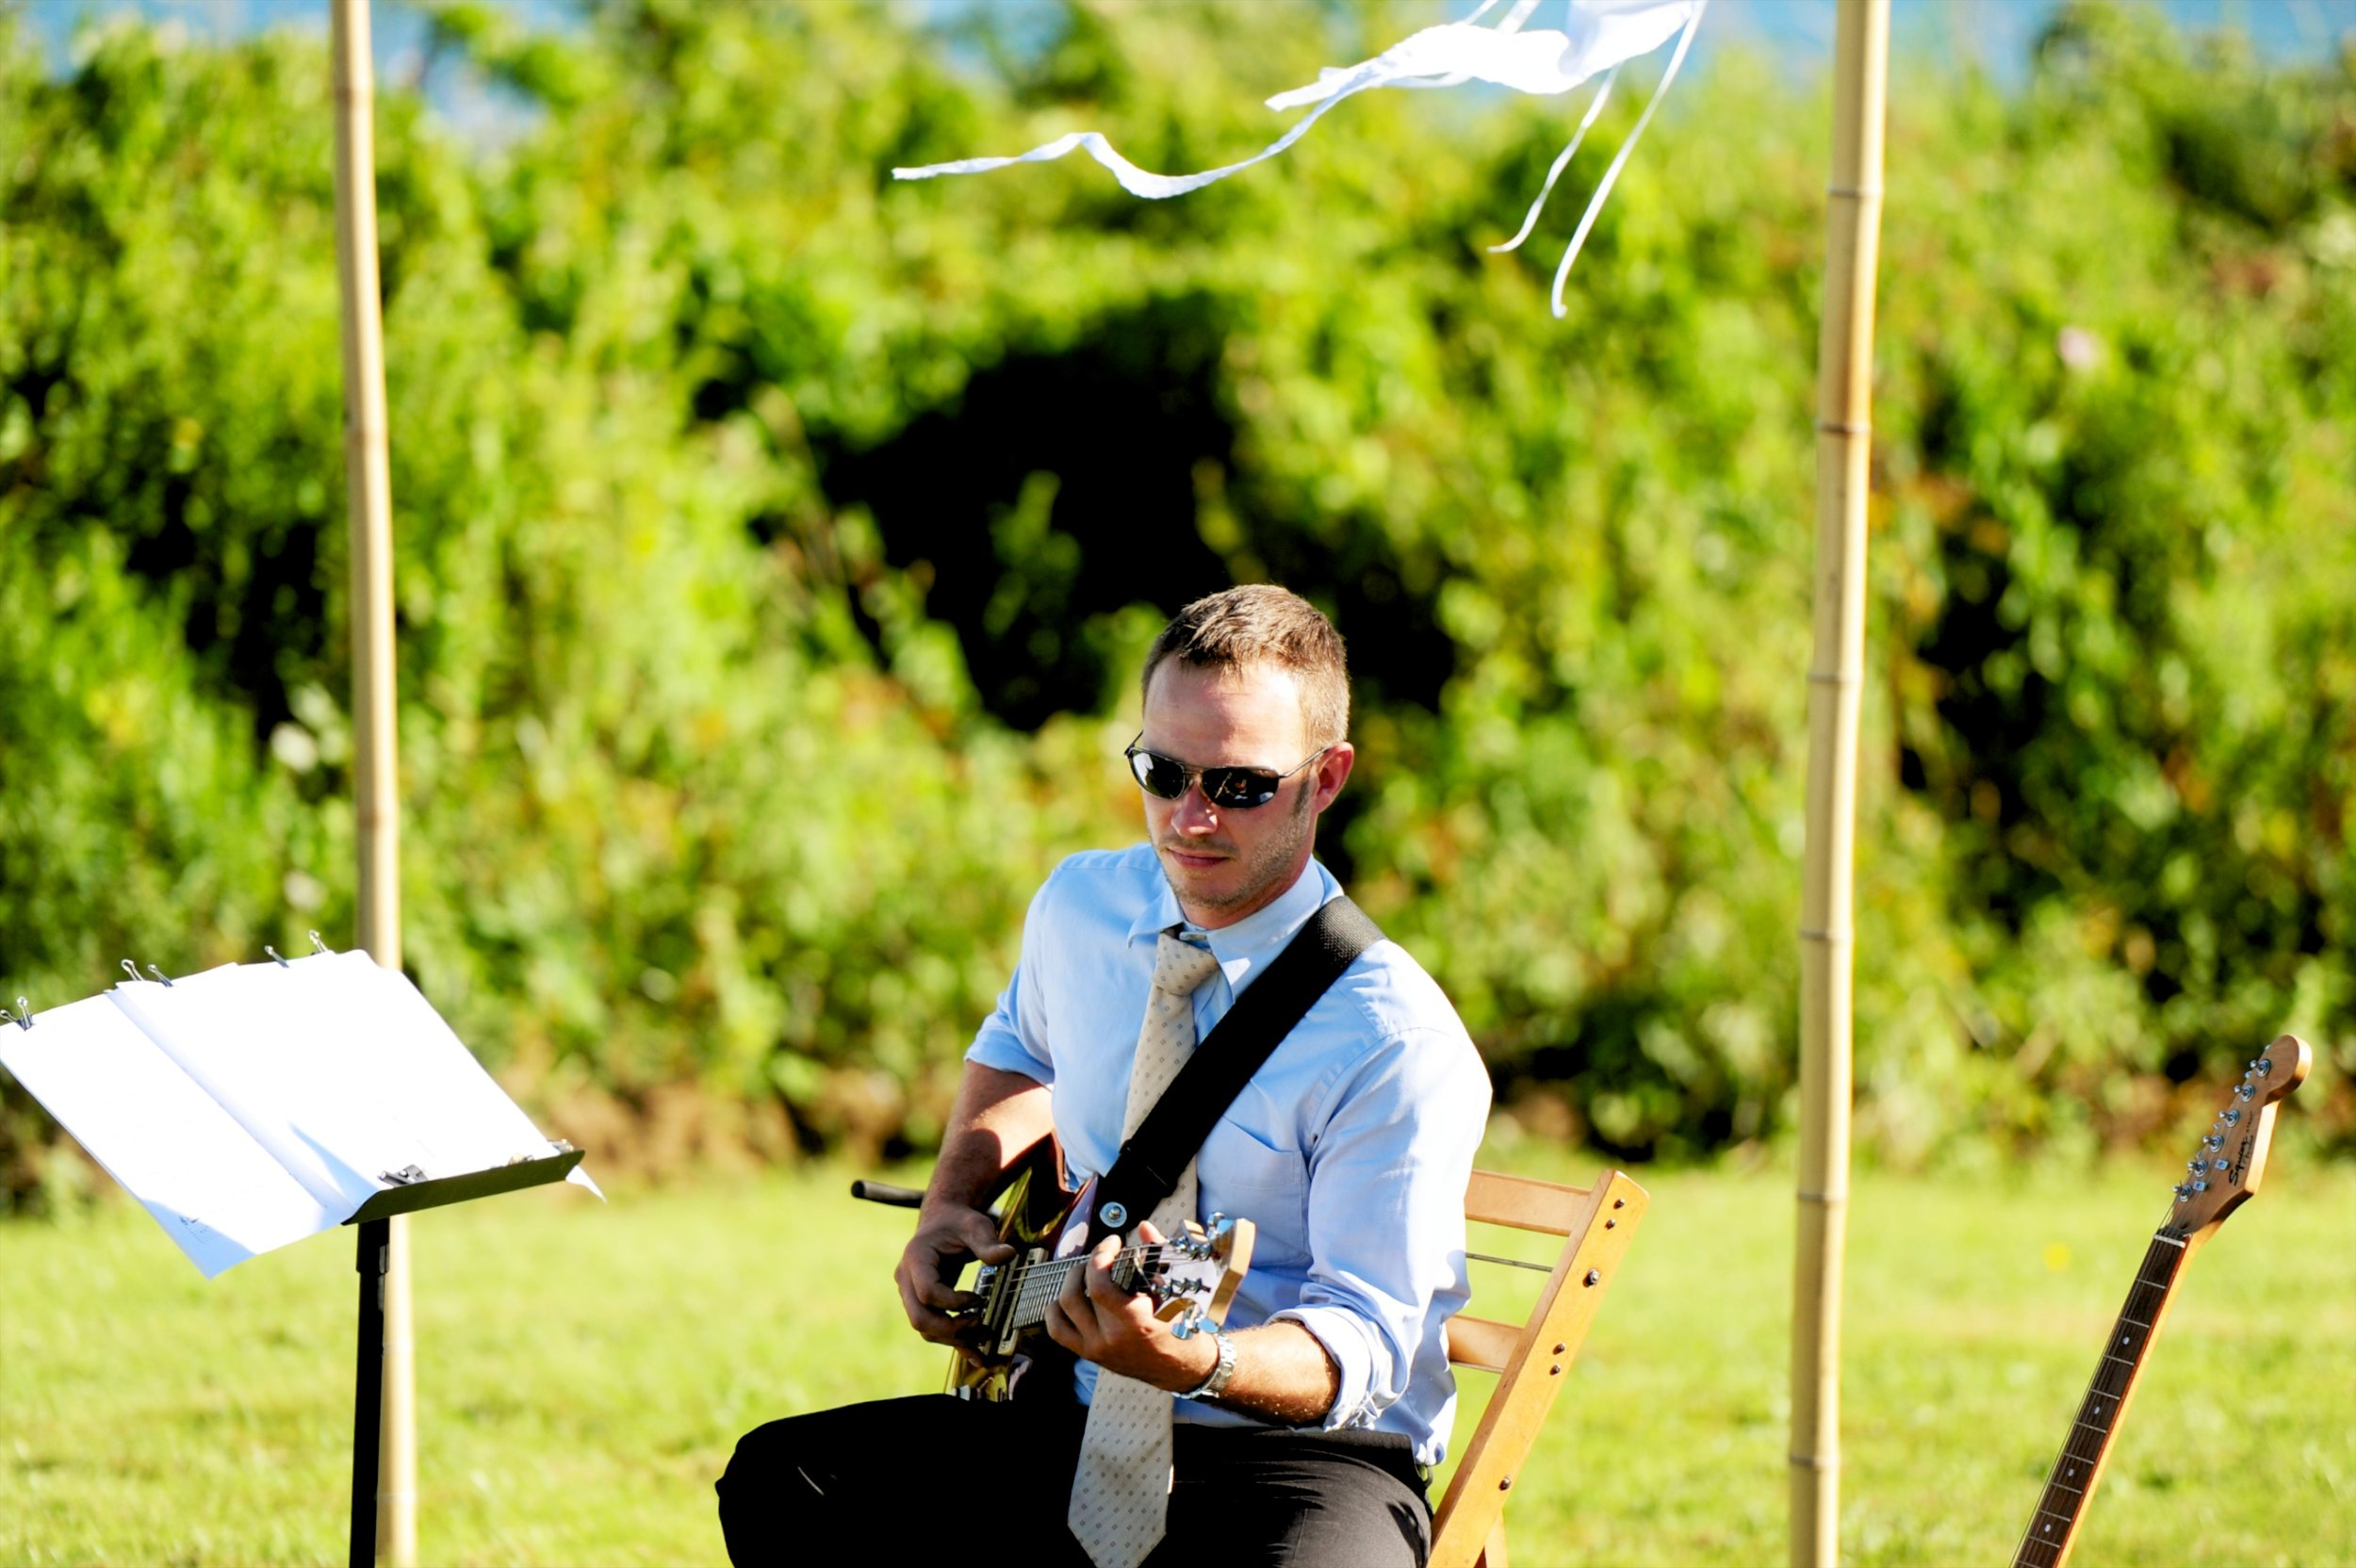 Midcoast Music Academy provides live music for weddings and other events throughout the state.